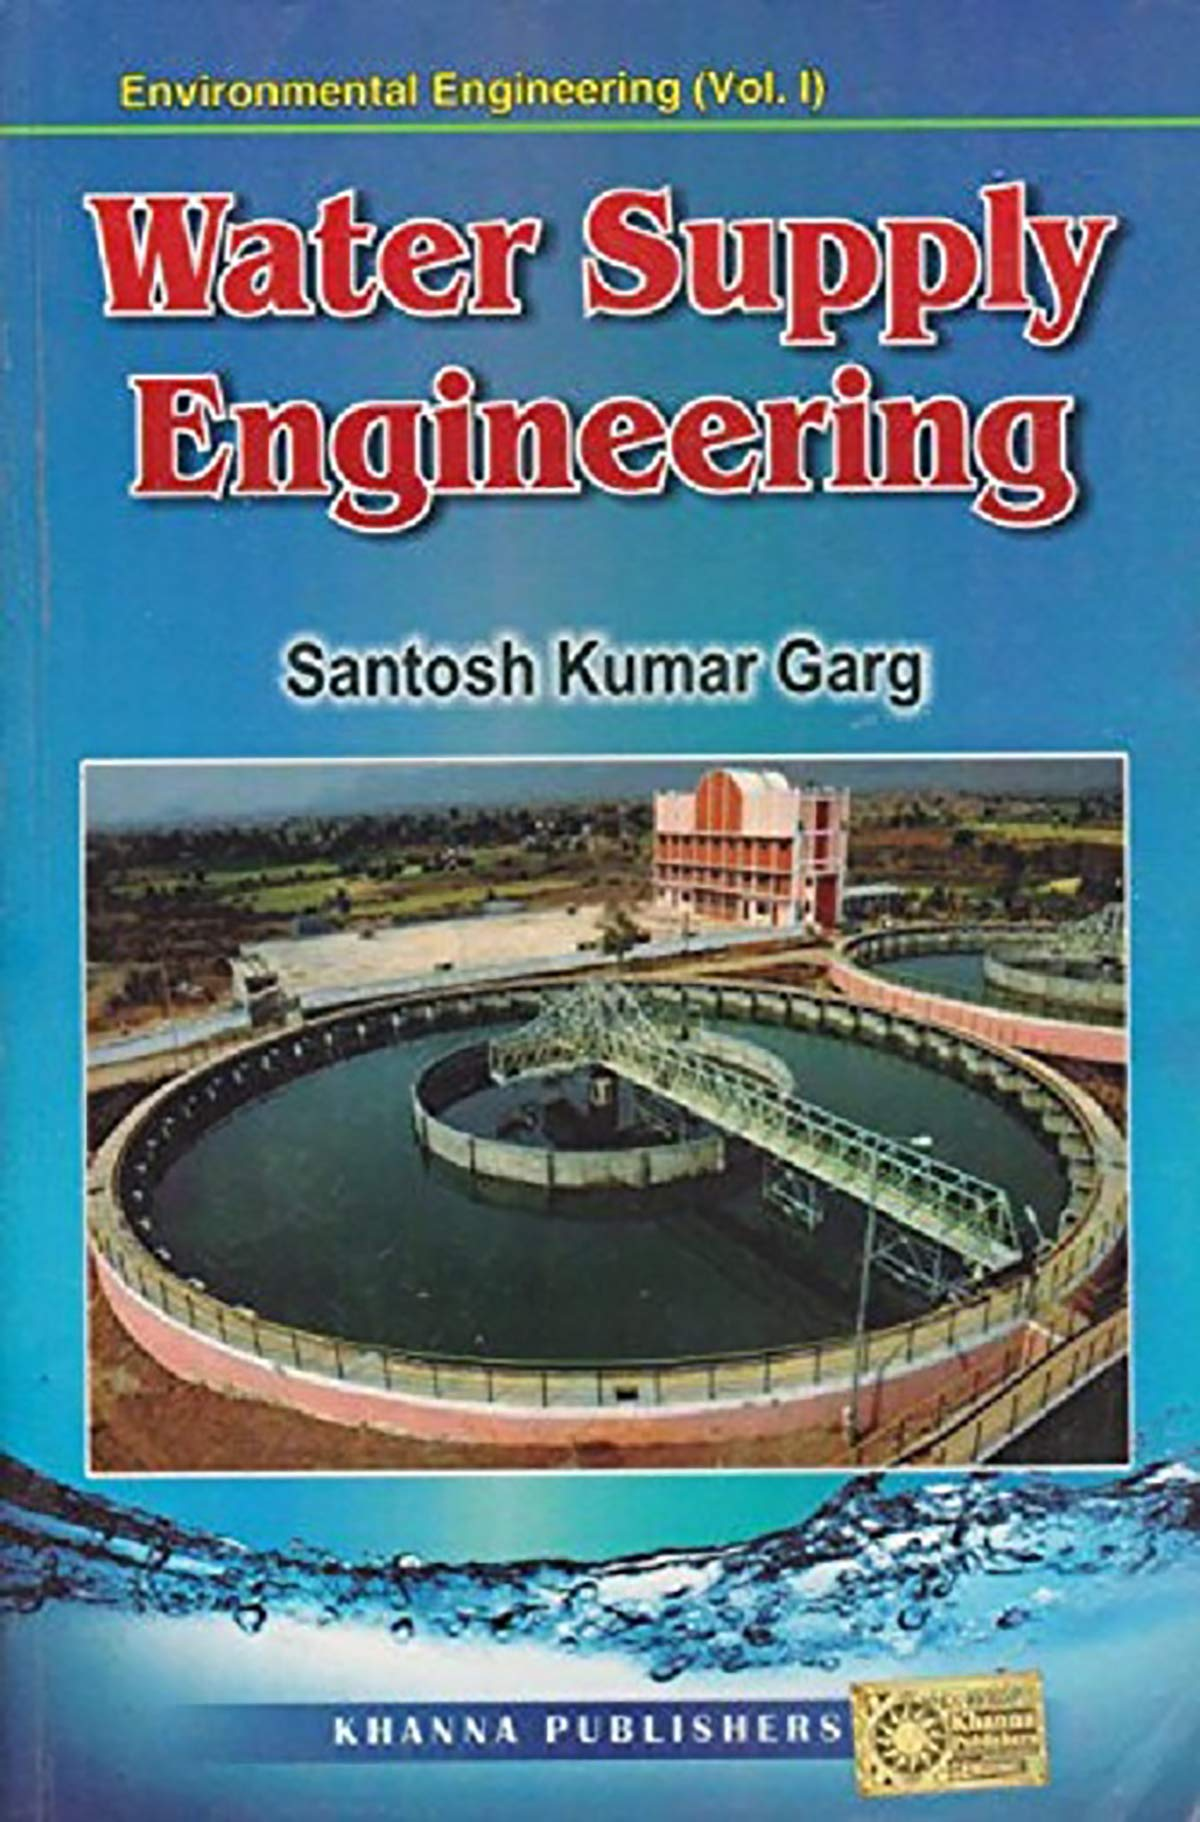 Buy Environmental Engineering Water Supply Engineering - Vol.1 Book Online at Low Prices in India | Environmental Engineering Water Supply Engineering - Vol.1 Reviews & Ratings - Amazon.in